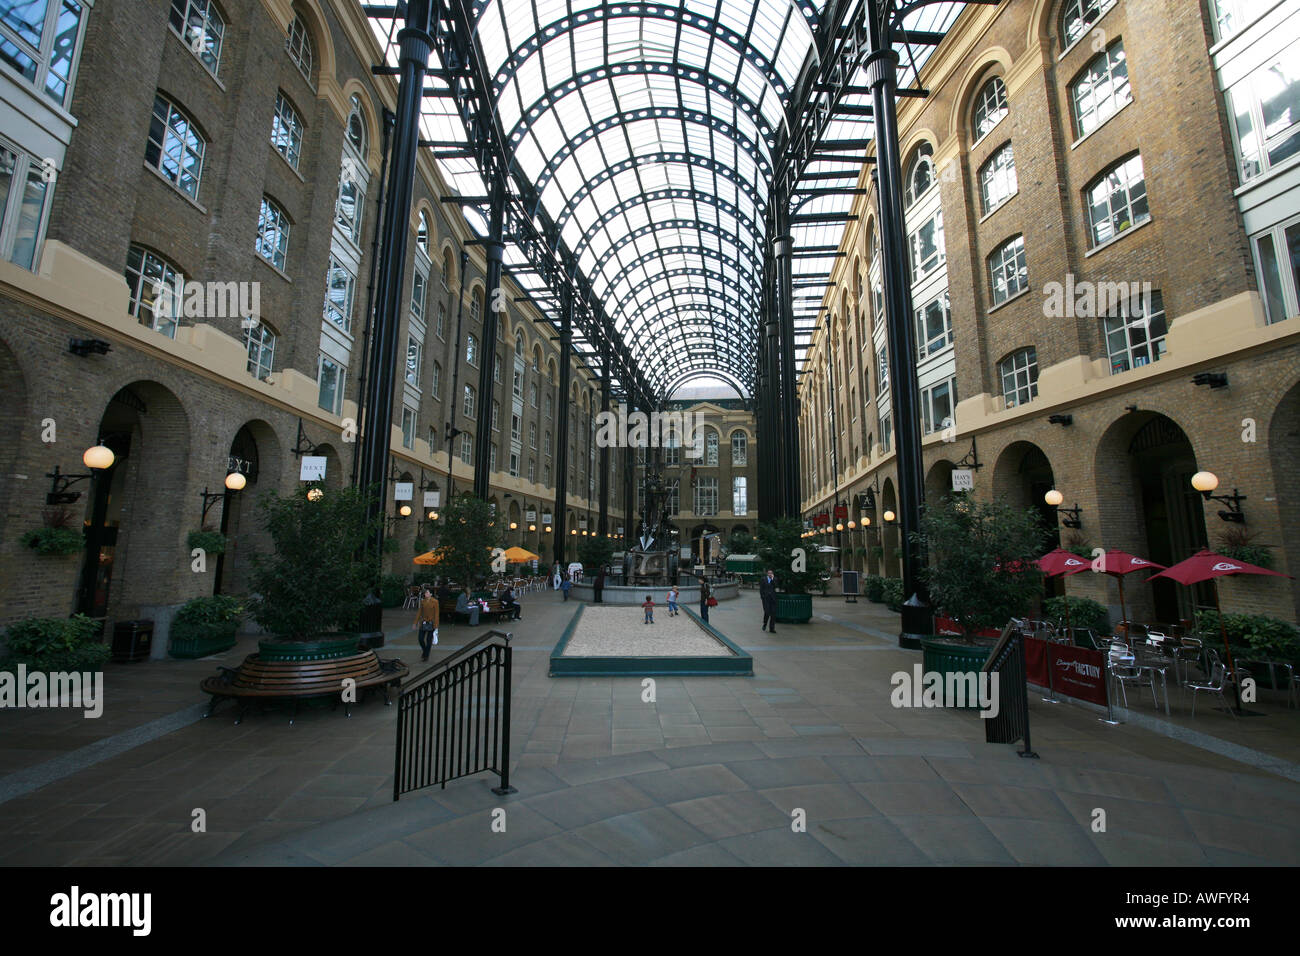 Hays Galleria On Hays Wharf Near River Thames A Popular Tourist